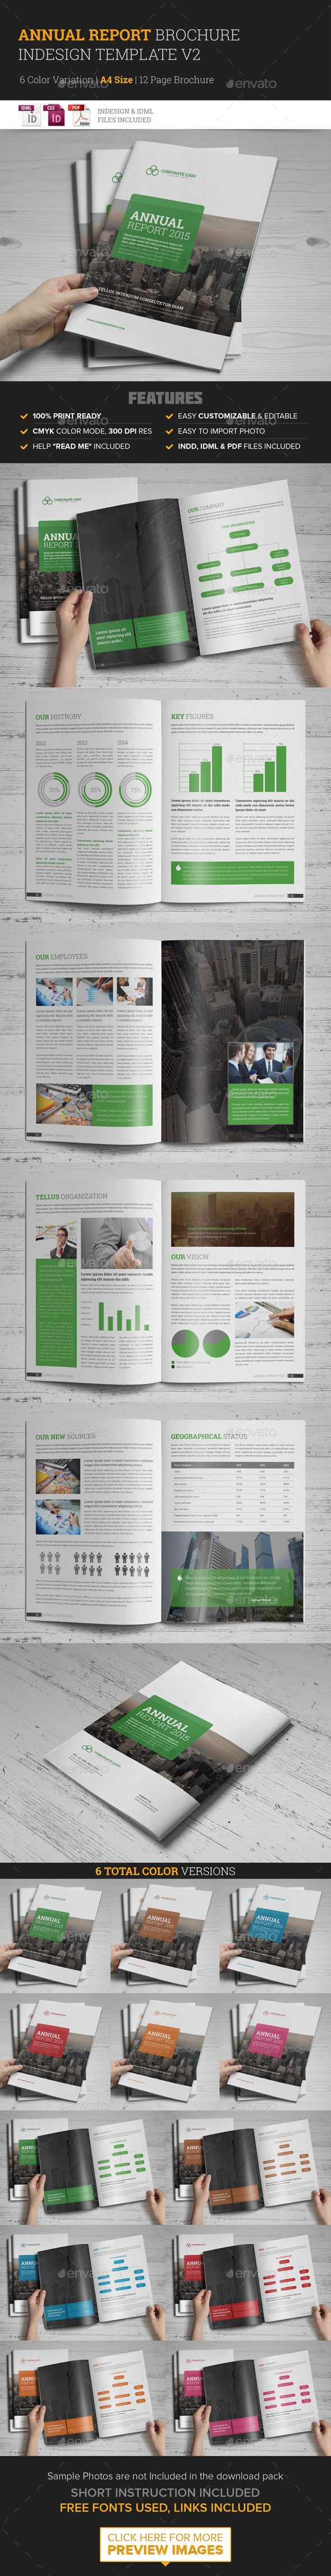 Annual Report Brochure Indesign Template v2